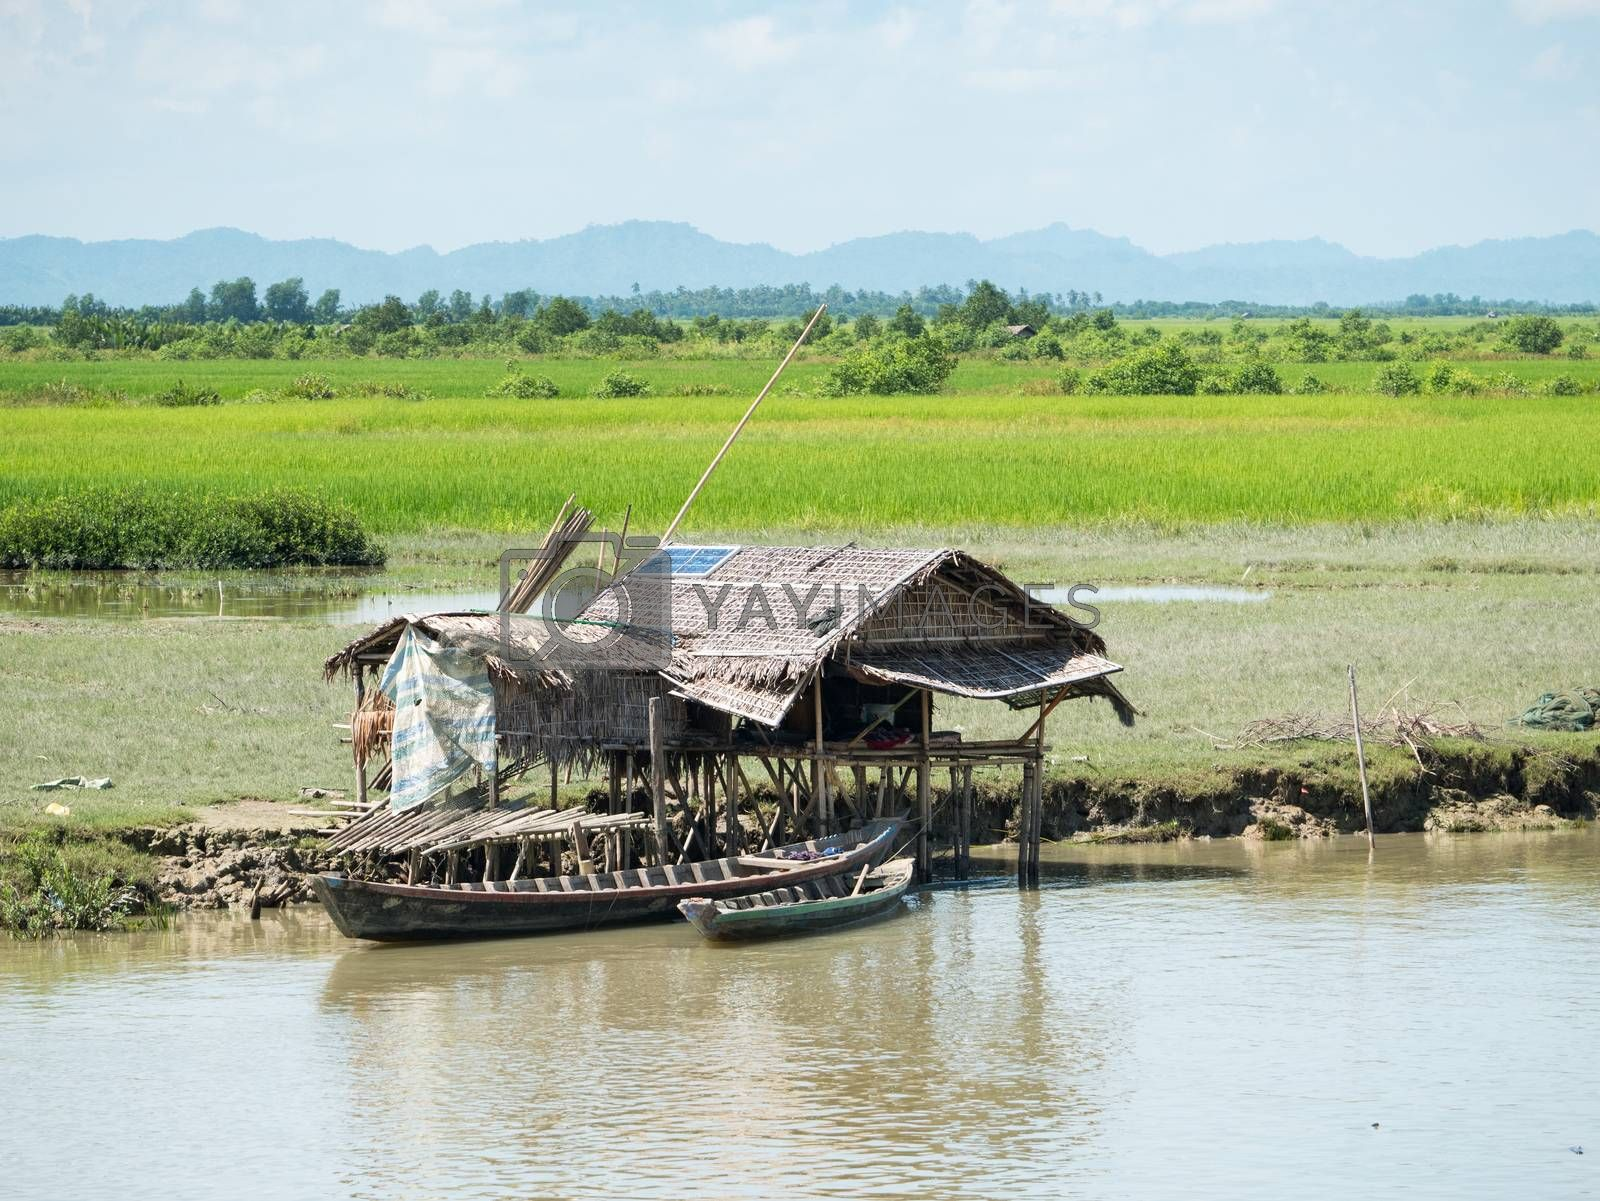 Very simple, traditional farmhouse made from straw, but with a solar panel on the roof for electricity, along the Kaladan River in the Rakhine State of Myanmar.